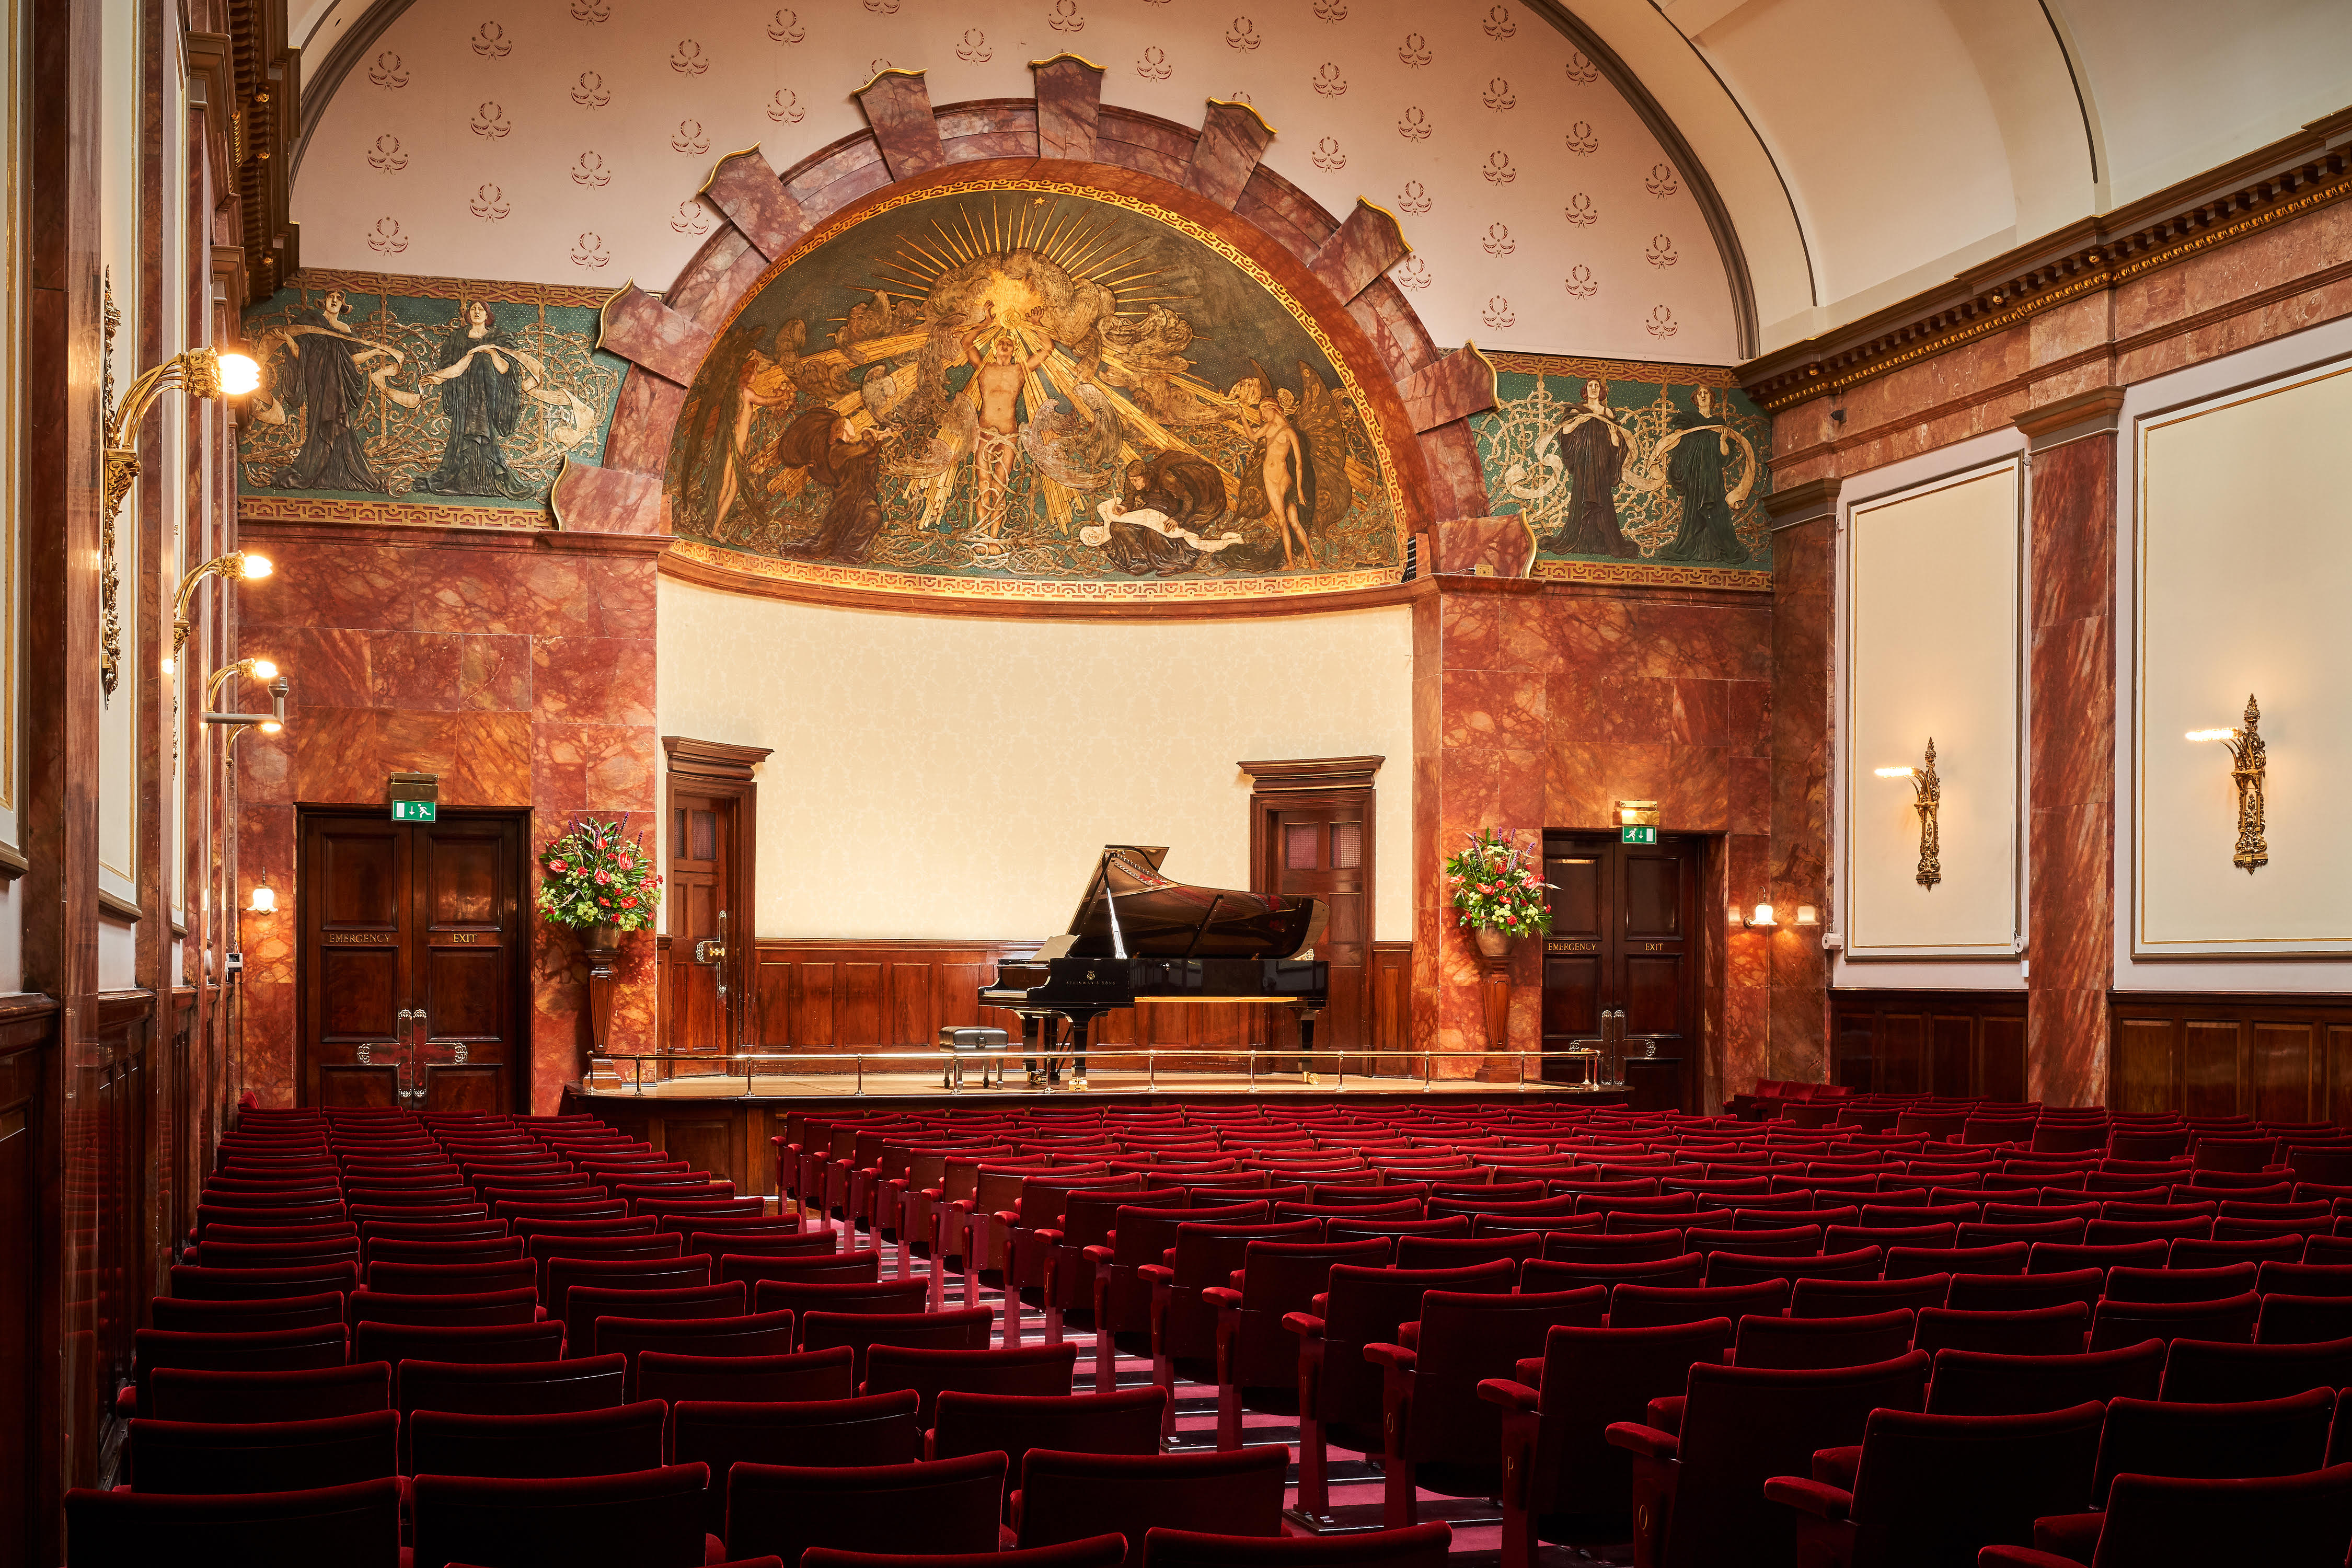 Concerts at Wigmore Hall in November and December are now on sale